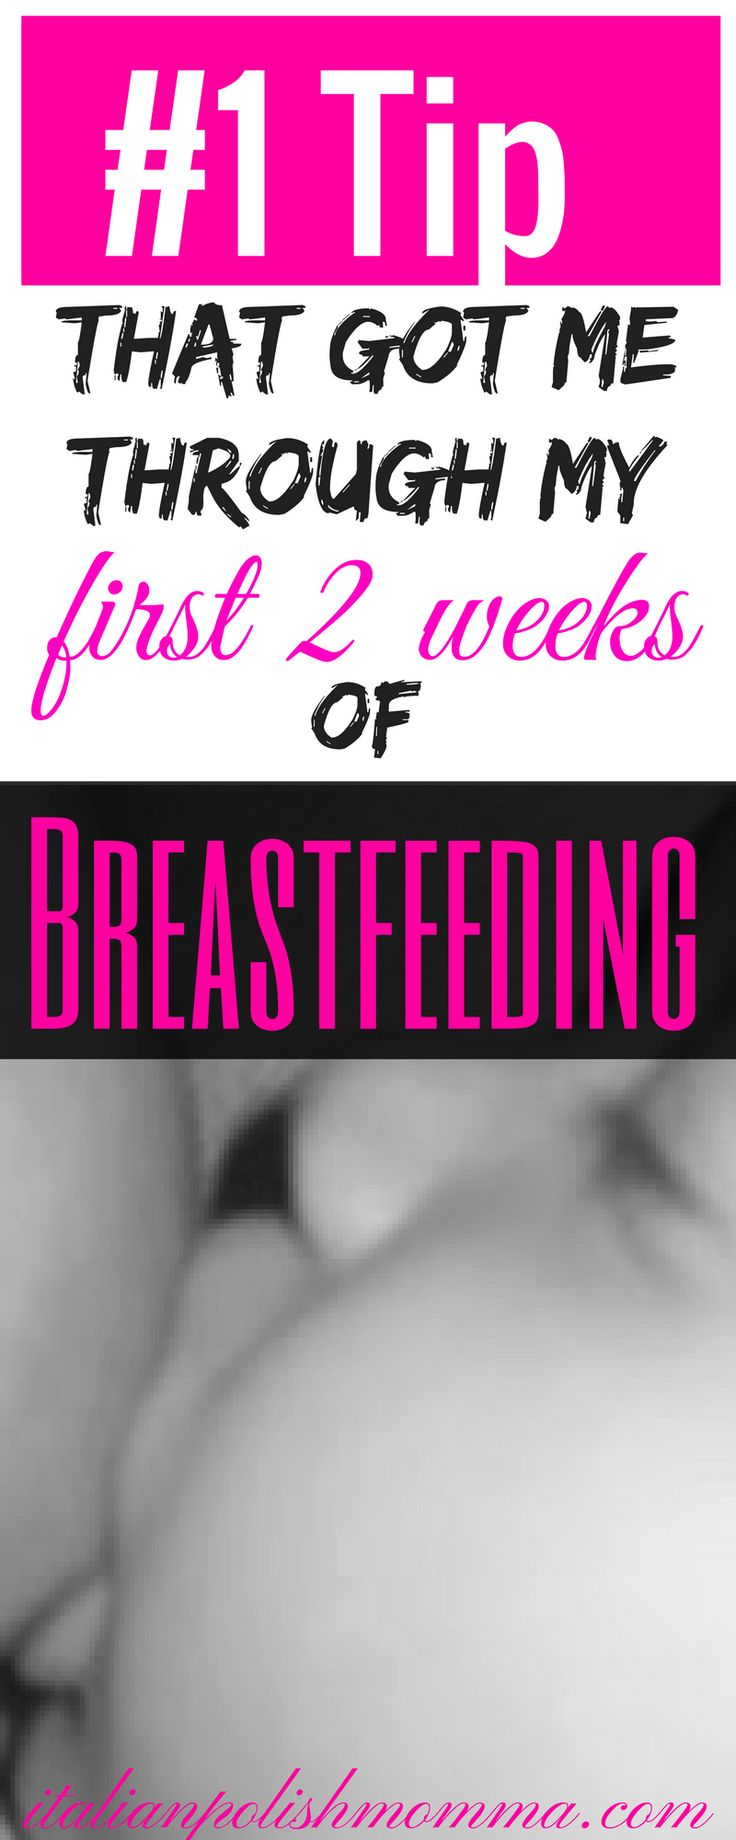 Breastfeeding is no joke, it can be so hard! This #1 breastfeeding tip will help you along your first two weeks of breastfeeding! Trust me, this helps! This is the best breastfeeding tip I ever got! #breastfeedingtips #breastfeeding #breastfeedingsecrets